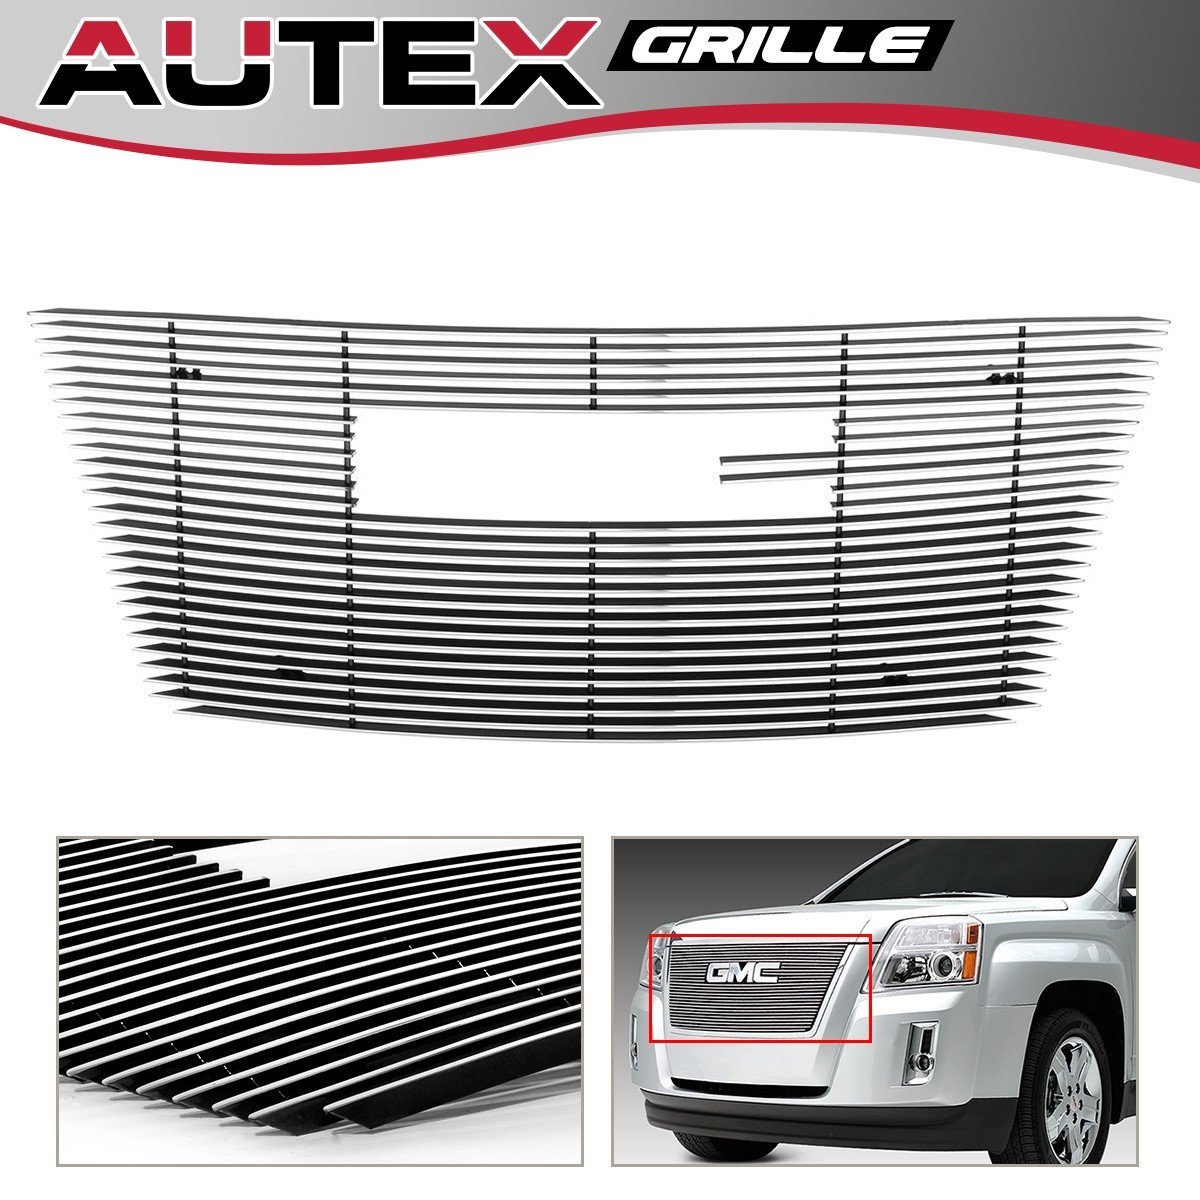 AUTEX Chrome Main Upper Horizontal Billet Grille Insert Compatible with GMC Terrain 2010 2011 2012 2013 2014 2015 Grill with Logo Show G66743A